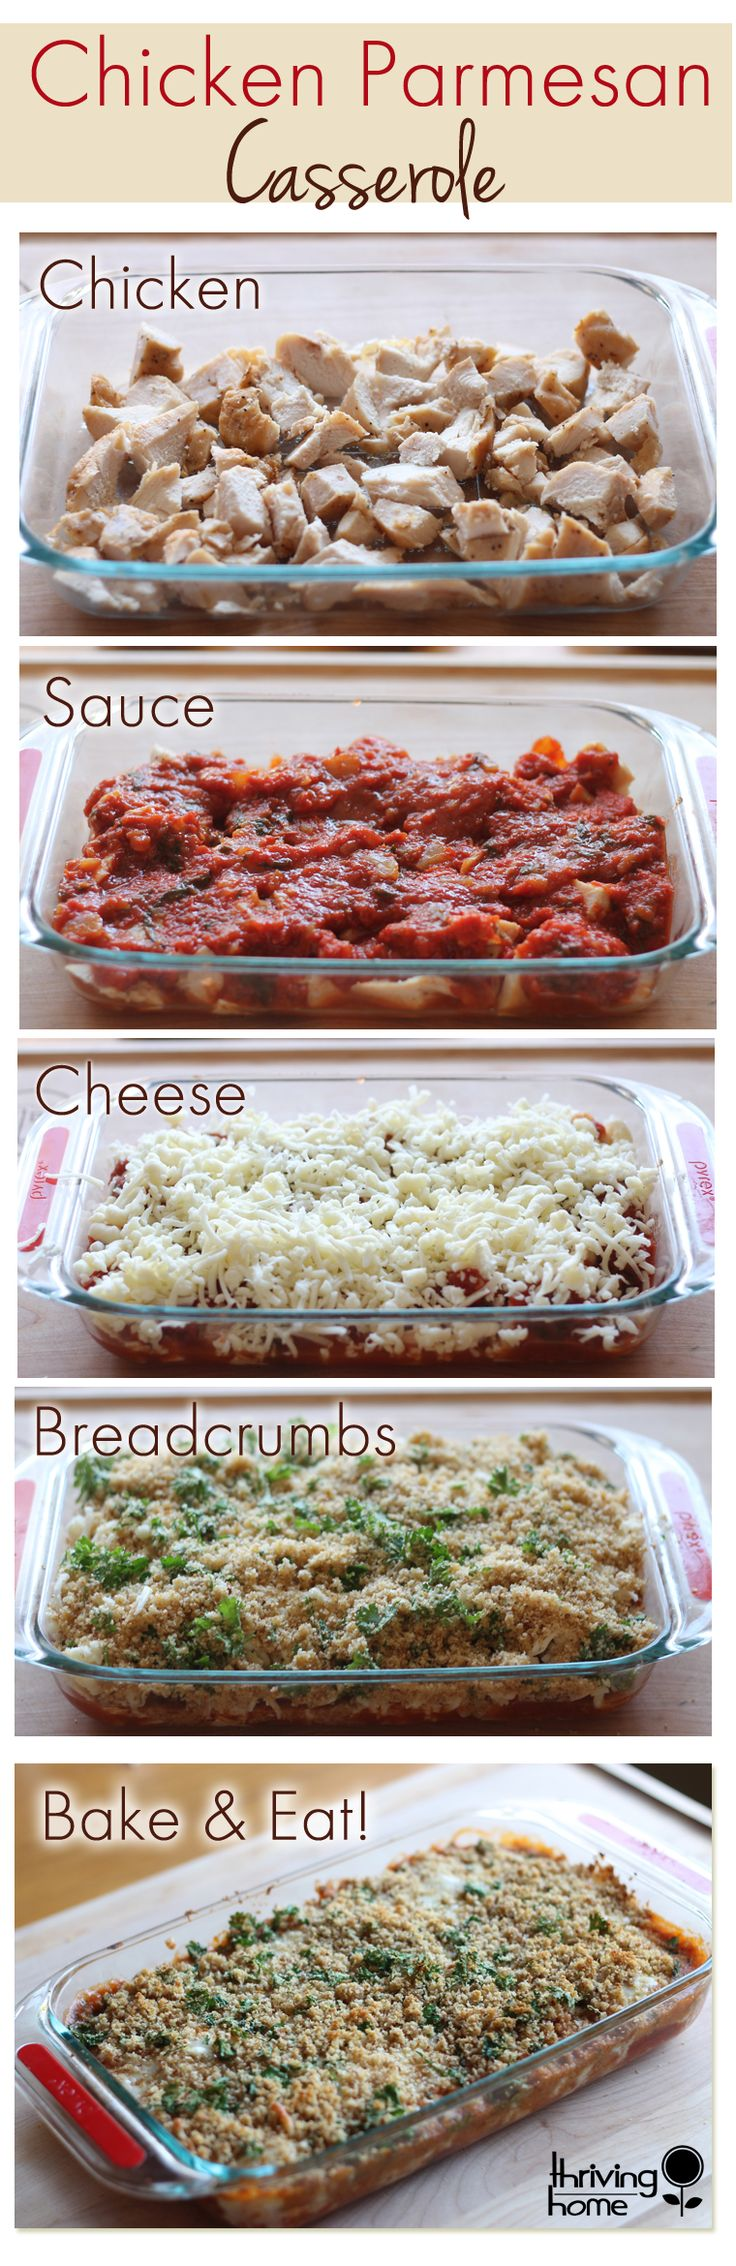 Chicken Parmesan Casserole Recipe…could add some spinach or something too